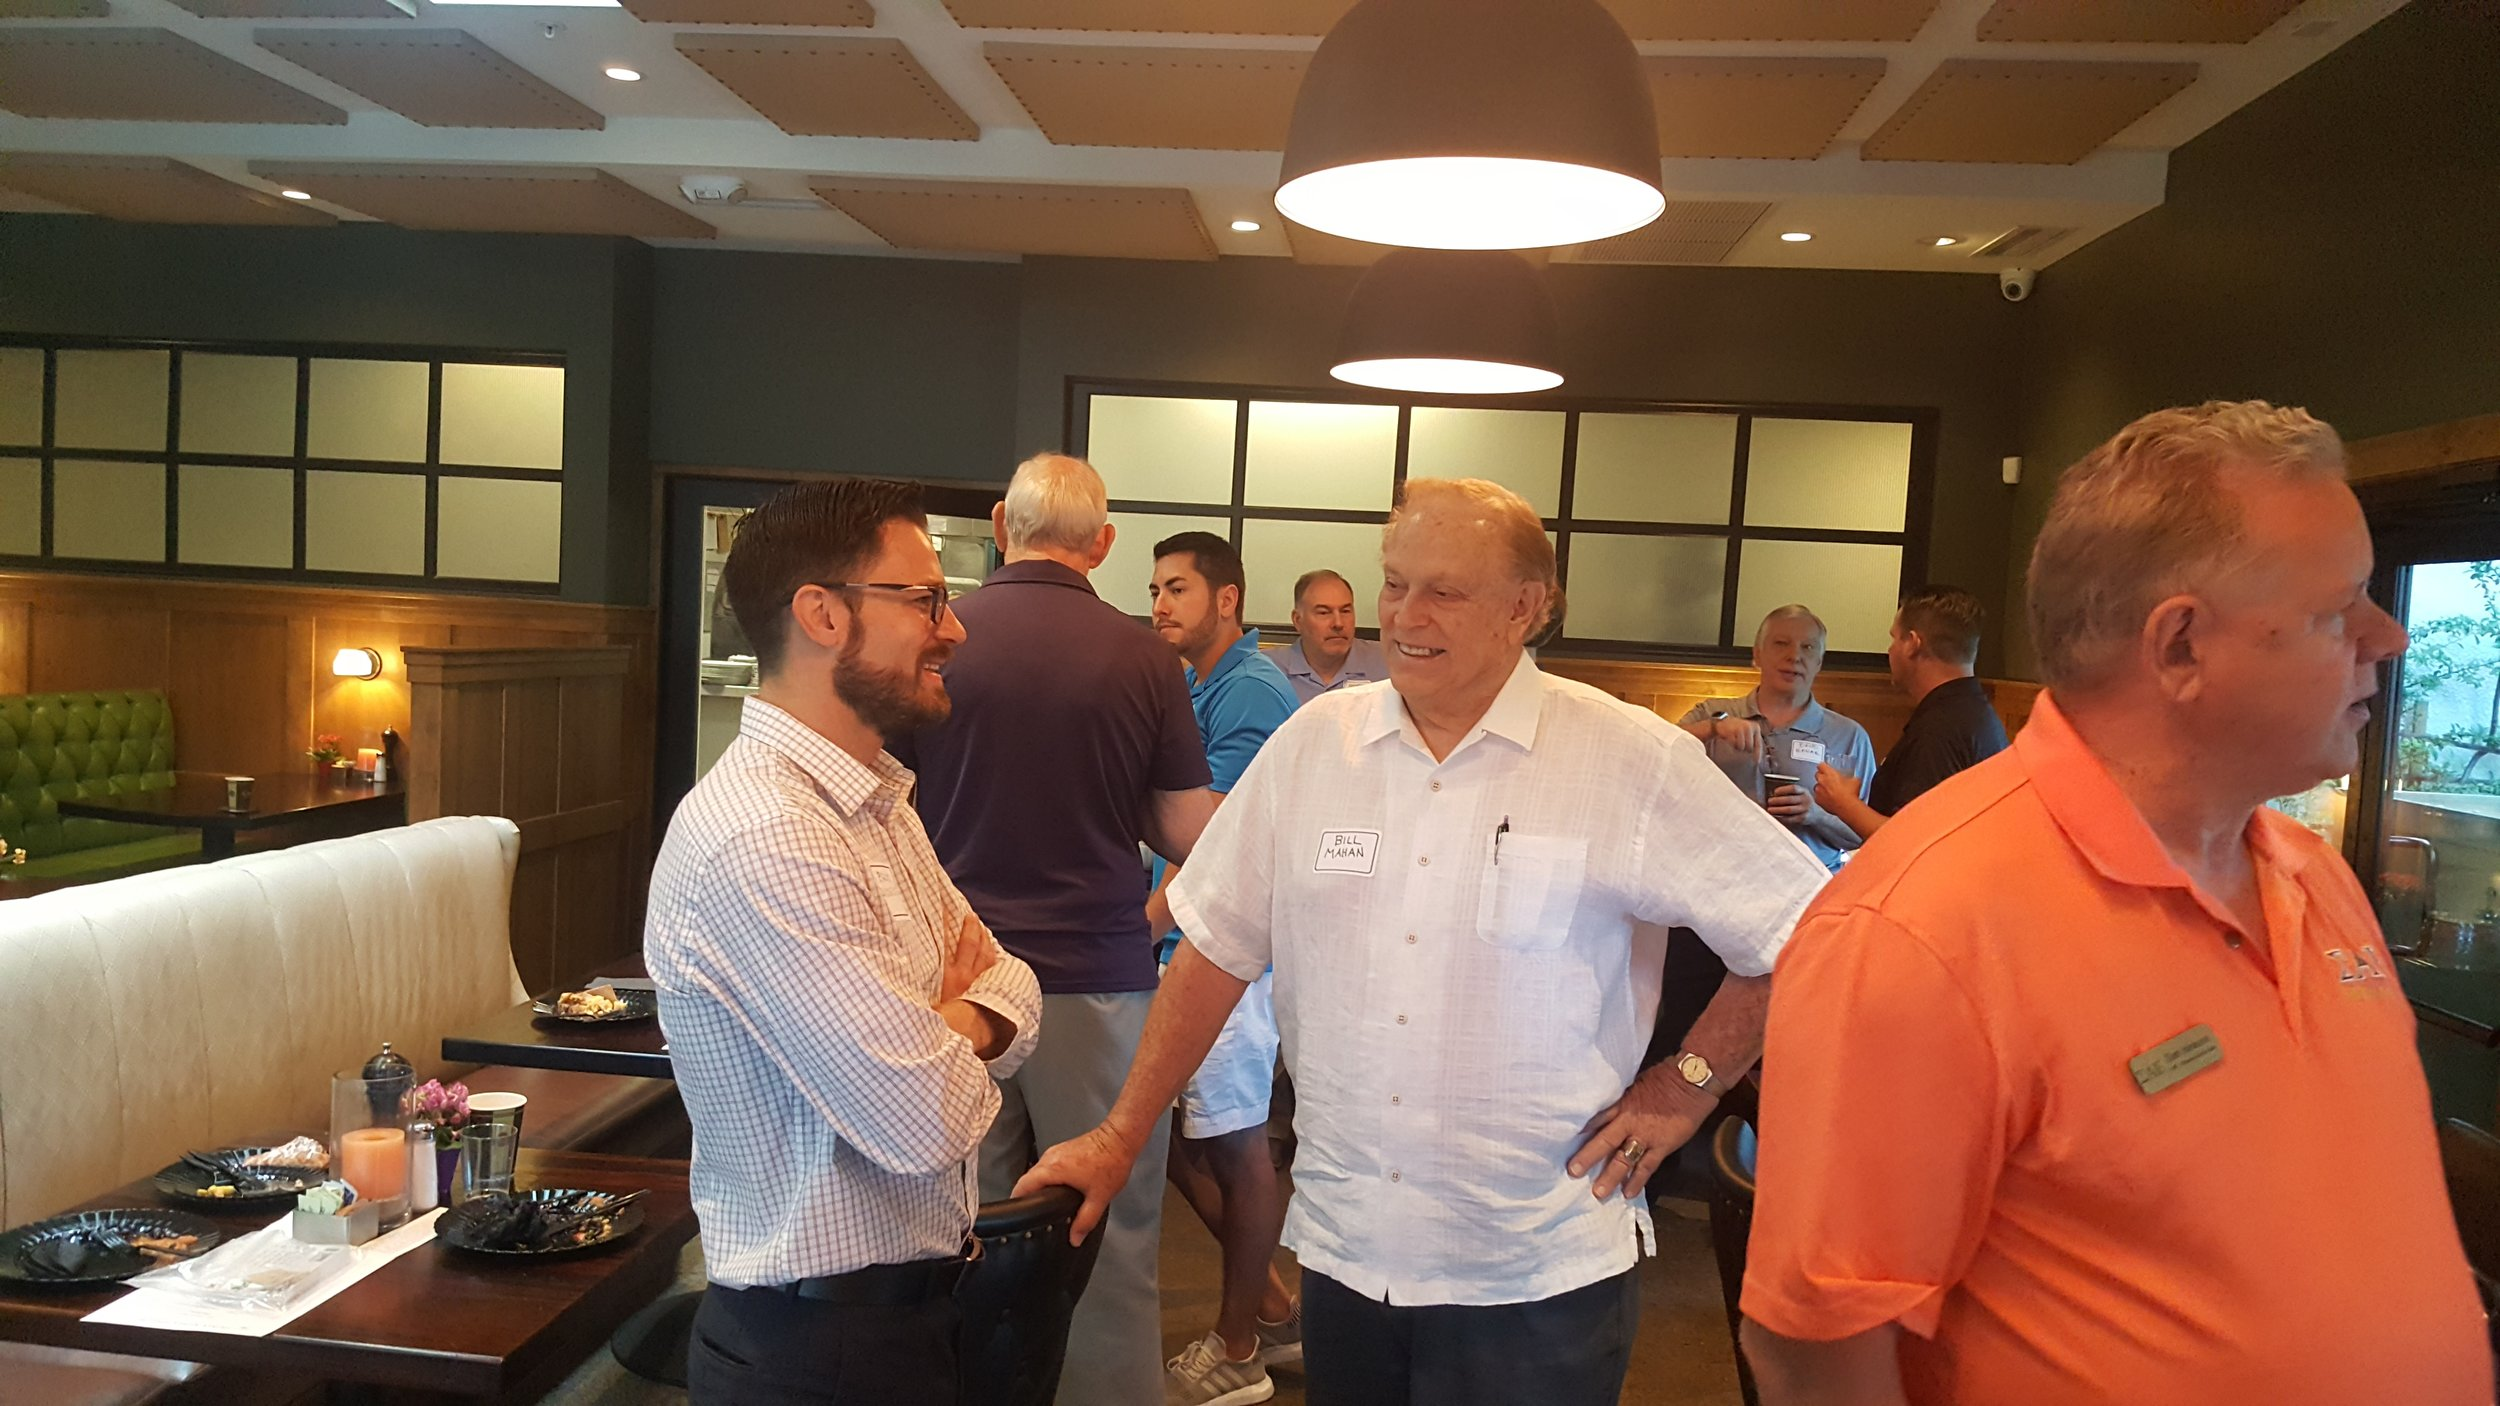 Real Estate update - Local real estate brokers Brock Rideout (AZ Beta '93) talked with long time Phx resident Bill Mahan, AZ Beta '65 about the booming housing market.